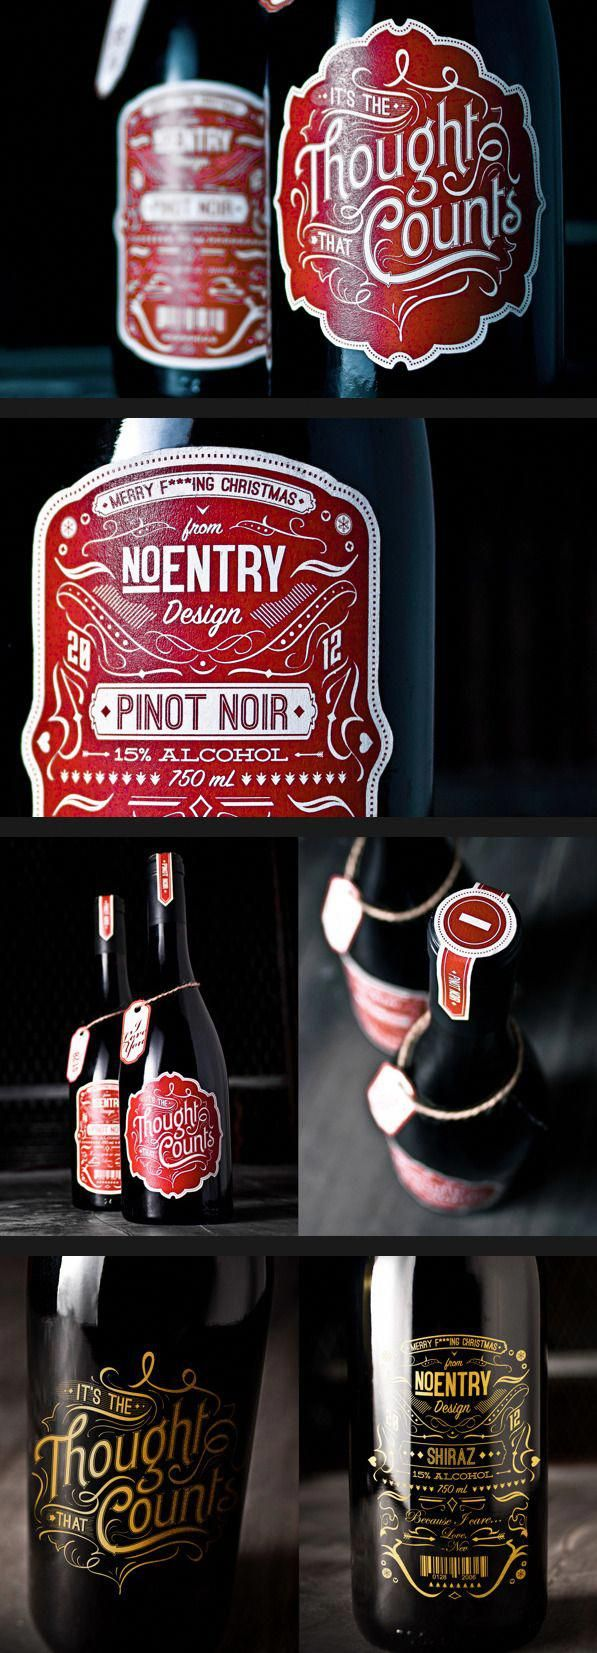 It S The Thought That Counts Wine Labels By No Entry Design Taninotanino Vinosmaximum Winebrands Wine Bottle Design Bottle Label Design Wine Label Design